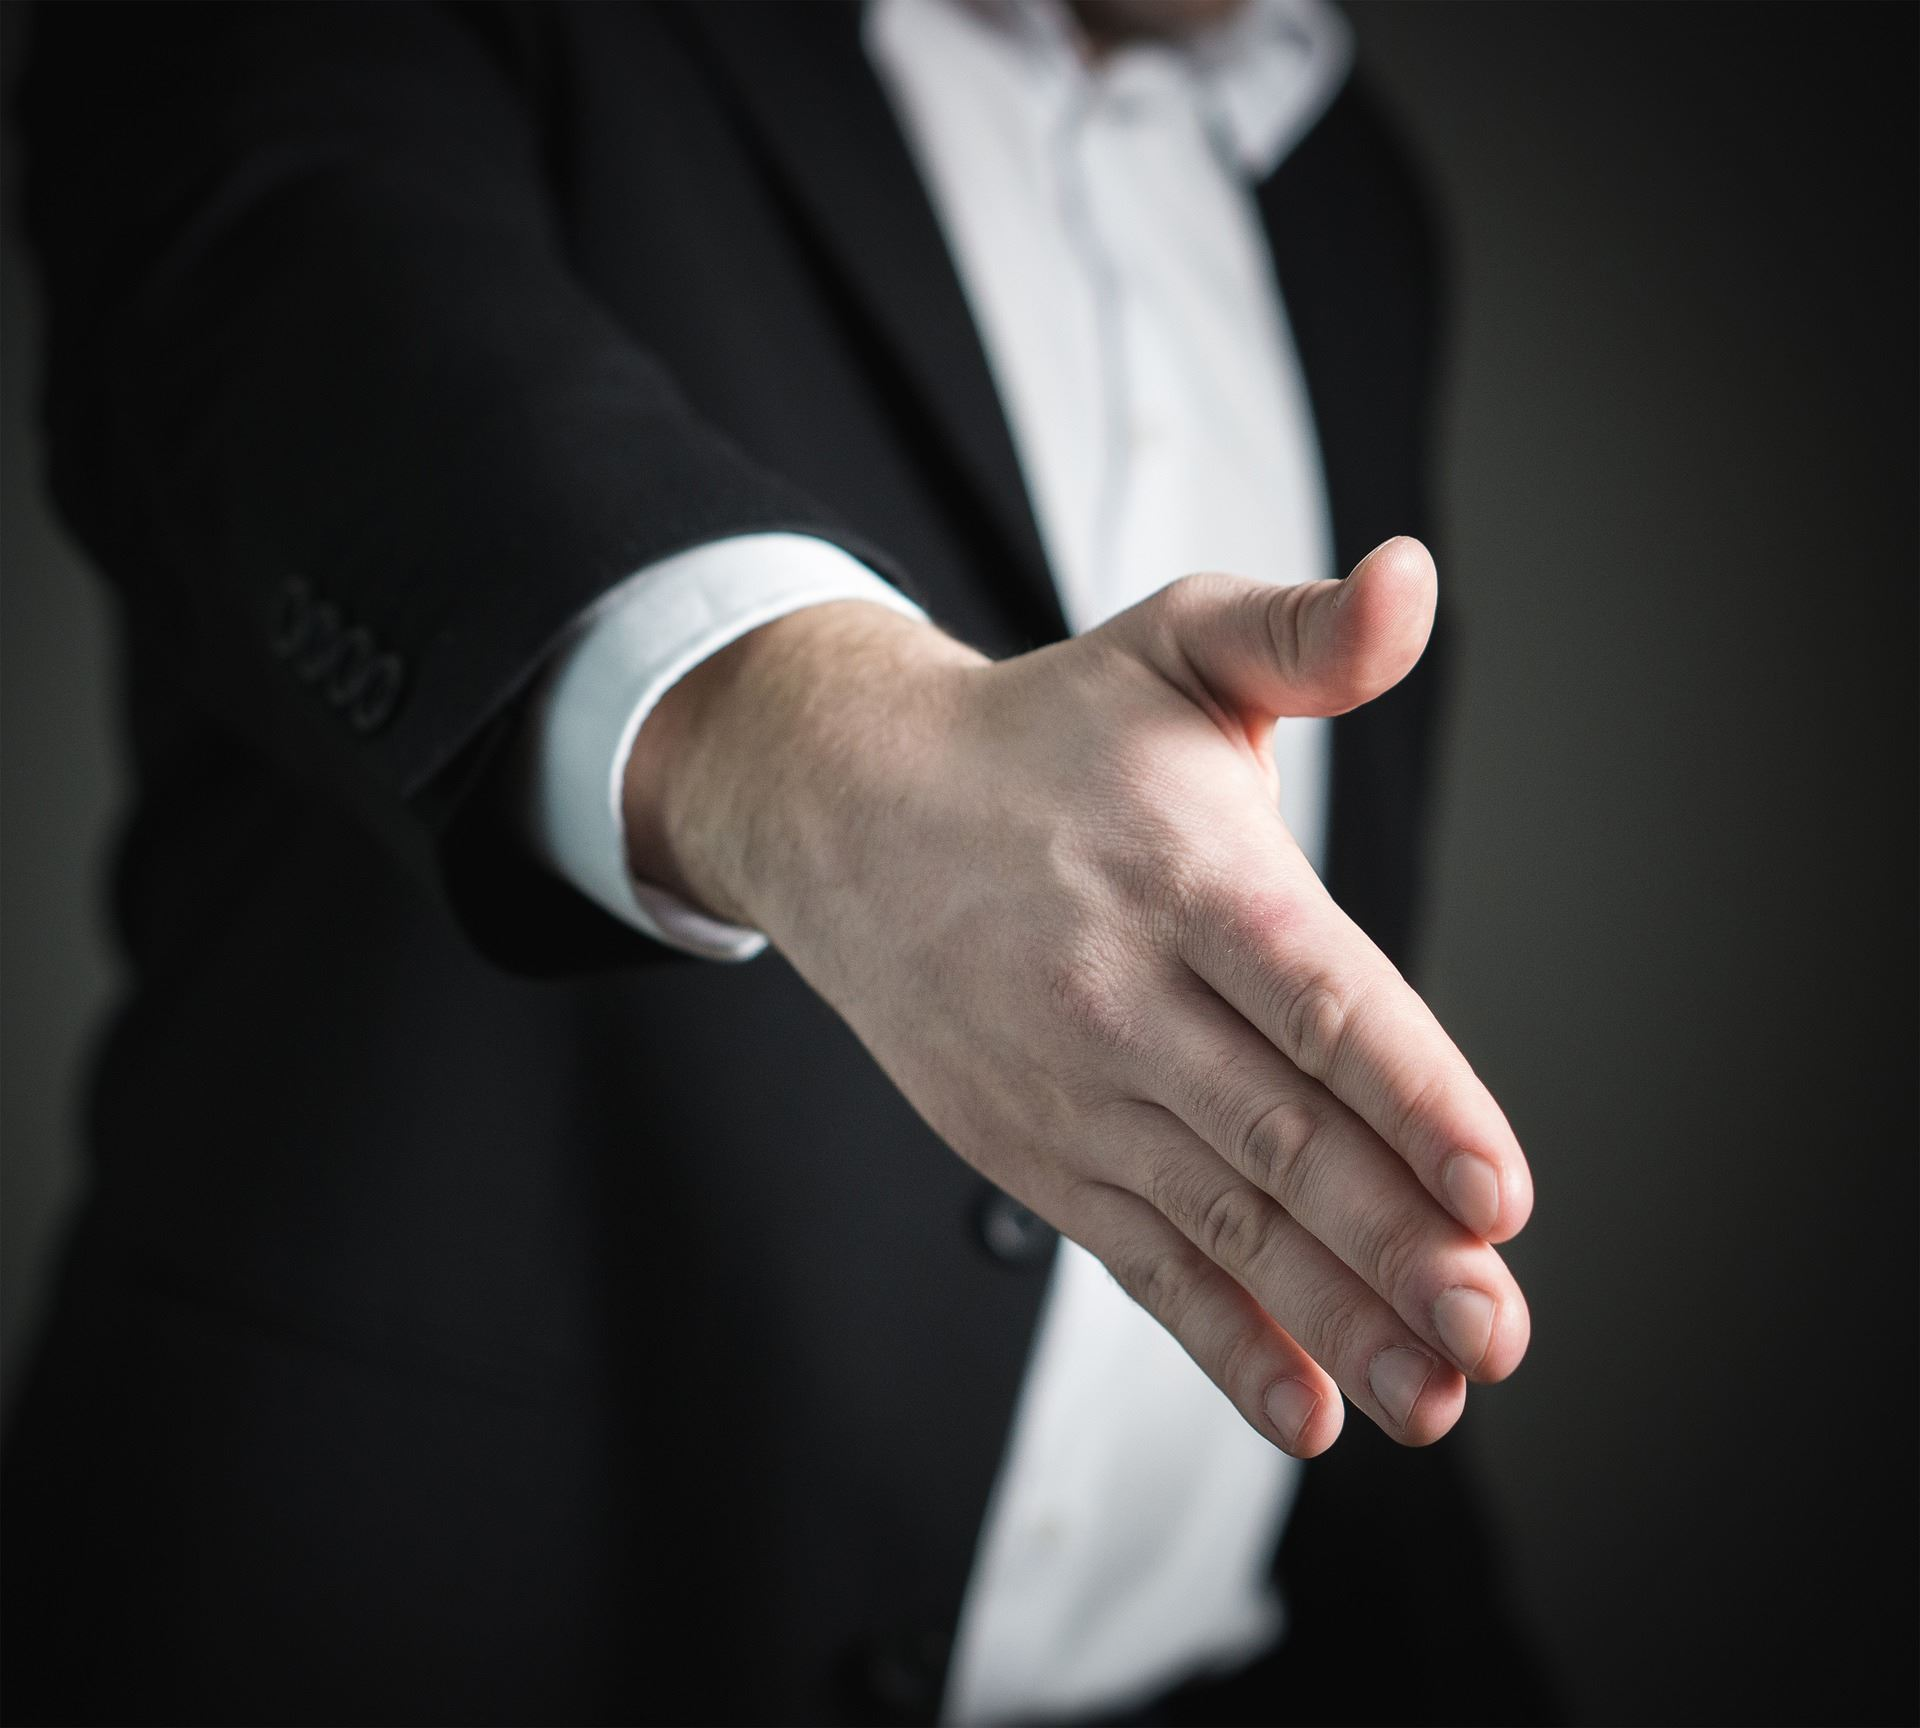 A hand extended out for a handshake